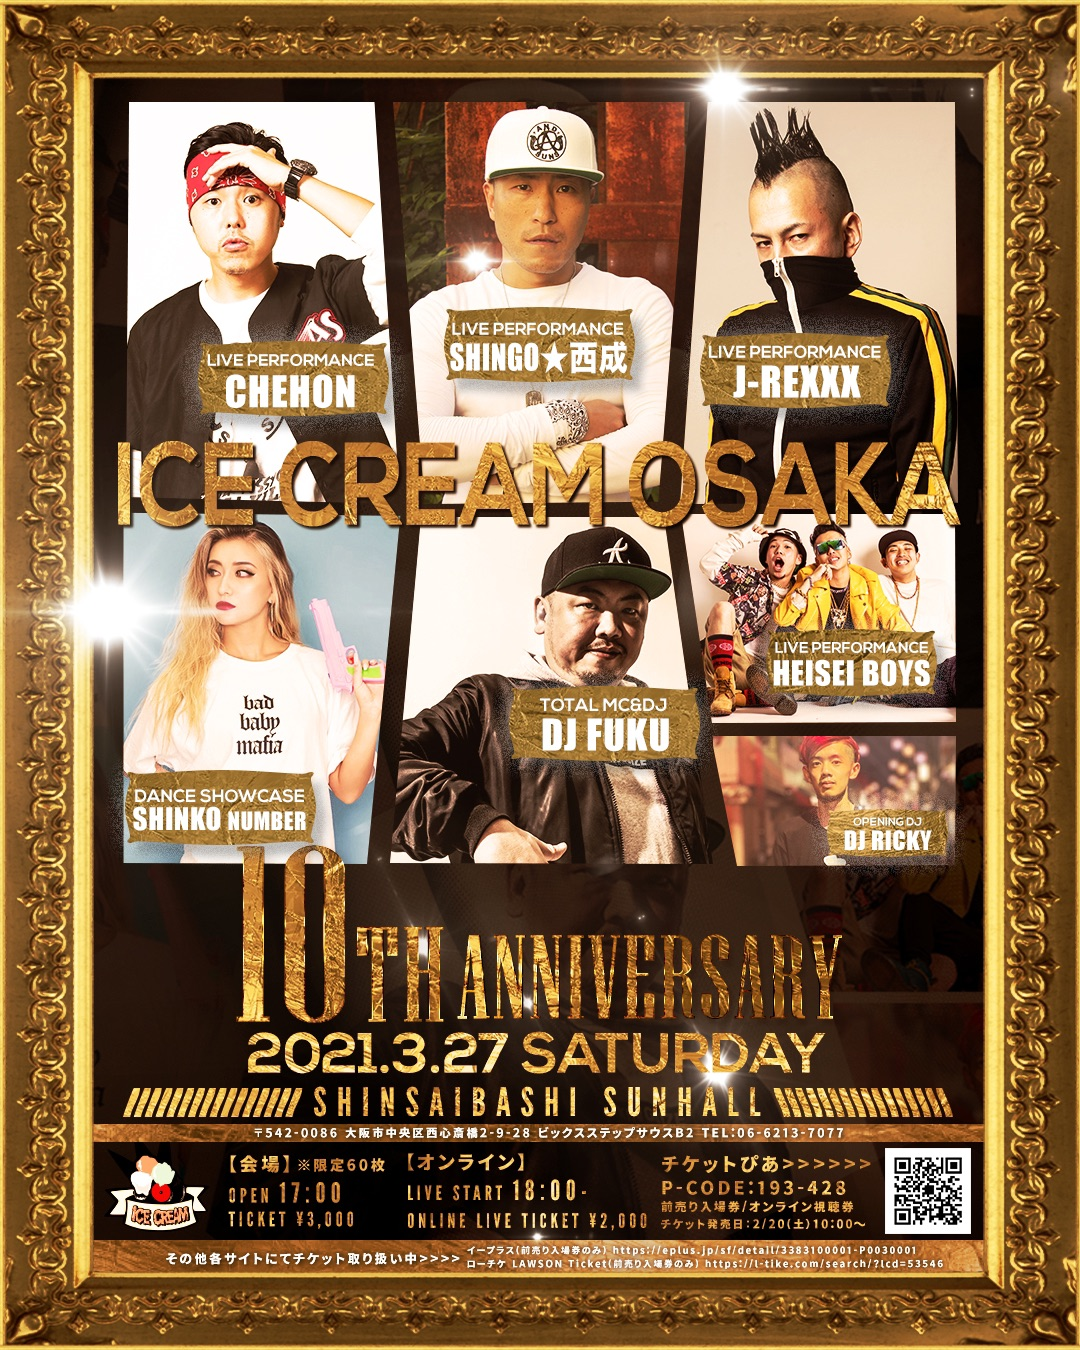 ICE CREAM OSAKA 10th Anniversary